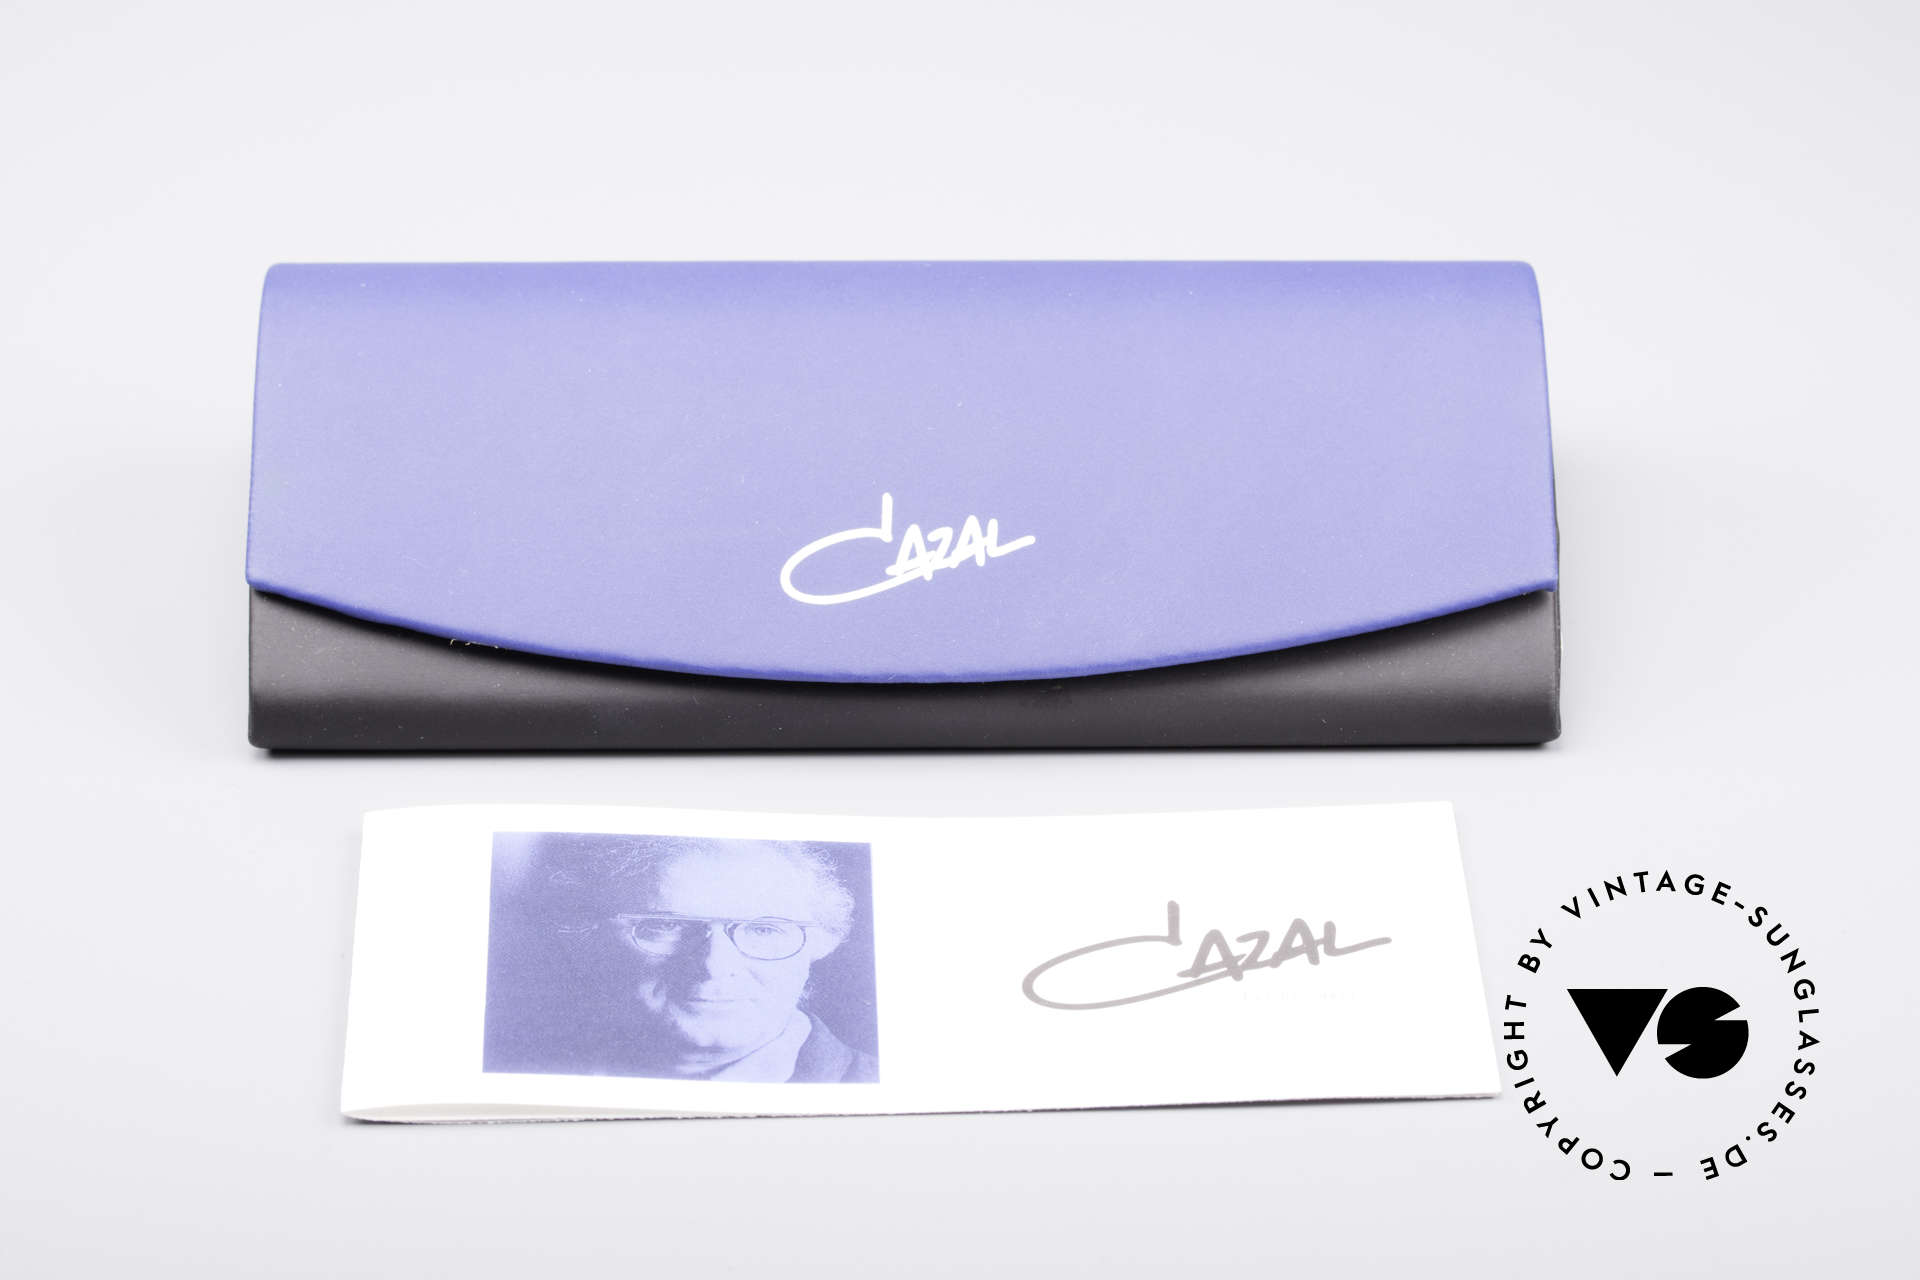 Cazal 971 Ultra Rare Designer Shades, reduced to 549€ (due to a small scratch on the right lens), Made for Men